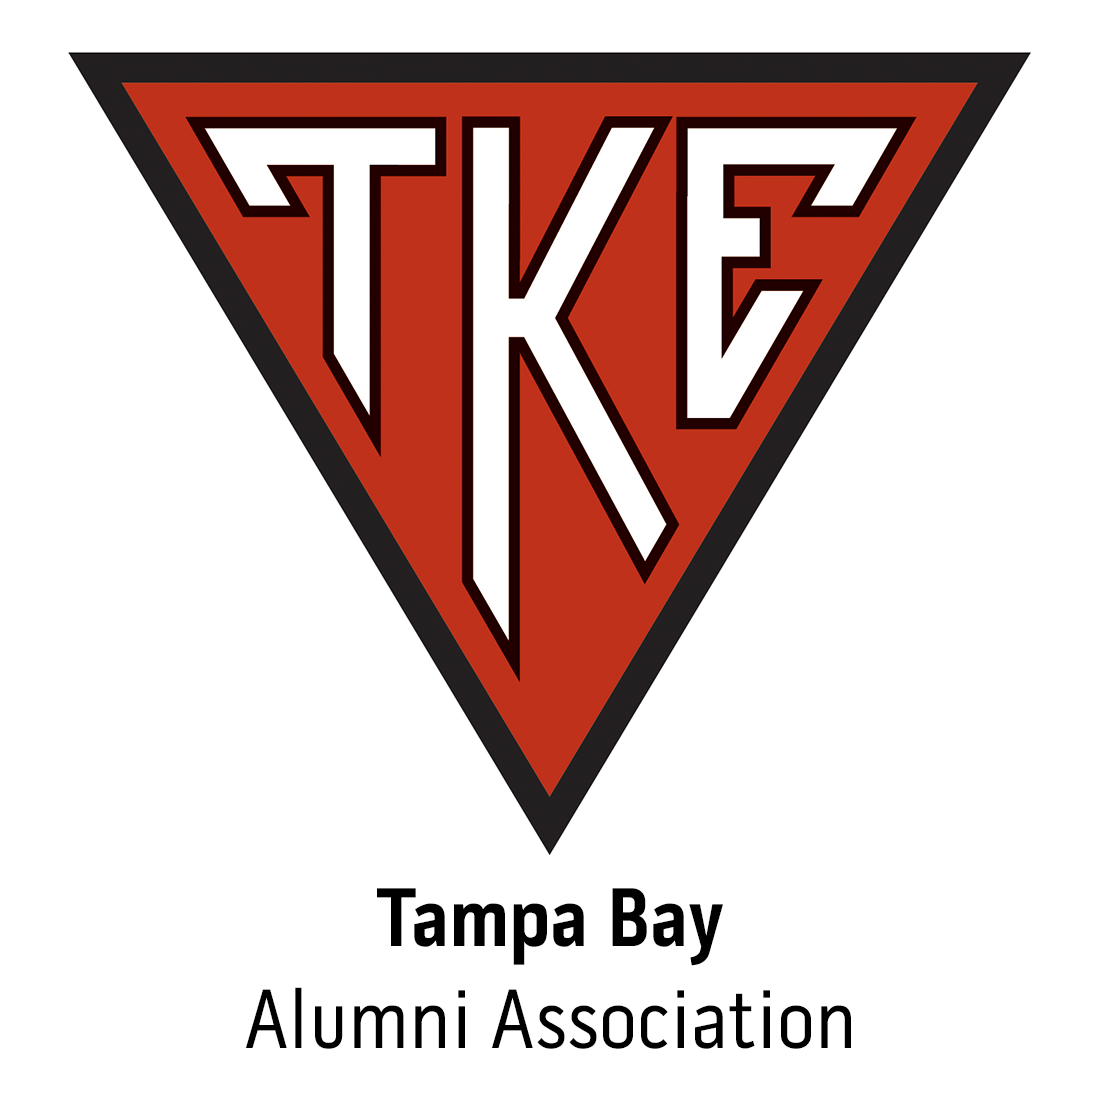 Tampa Bay Alumni Association for Tampa Bay Area Florida